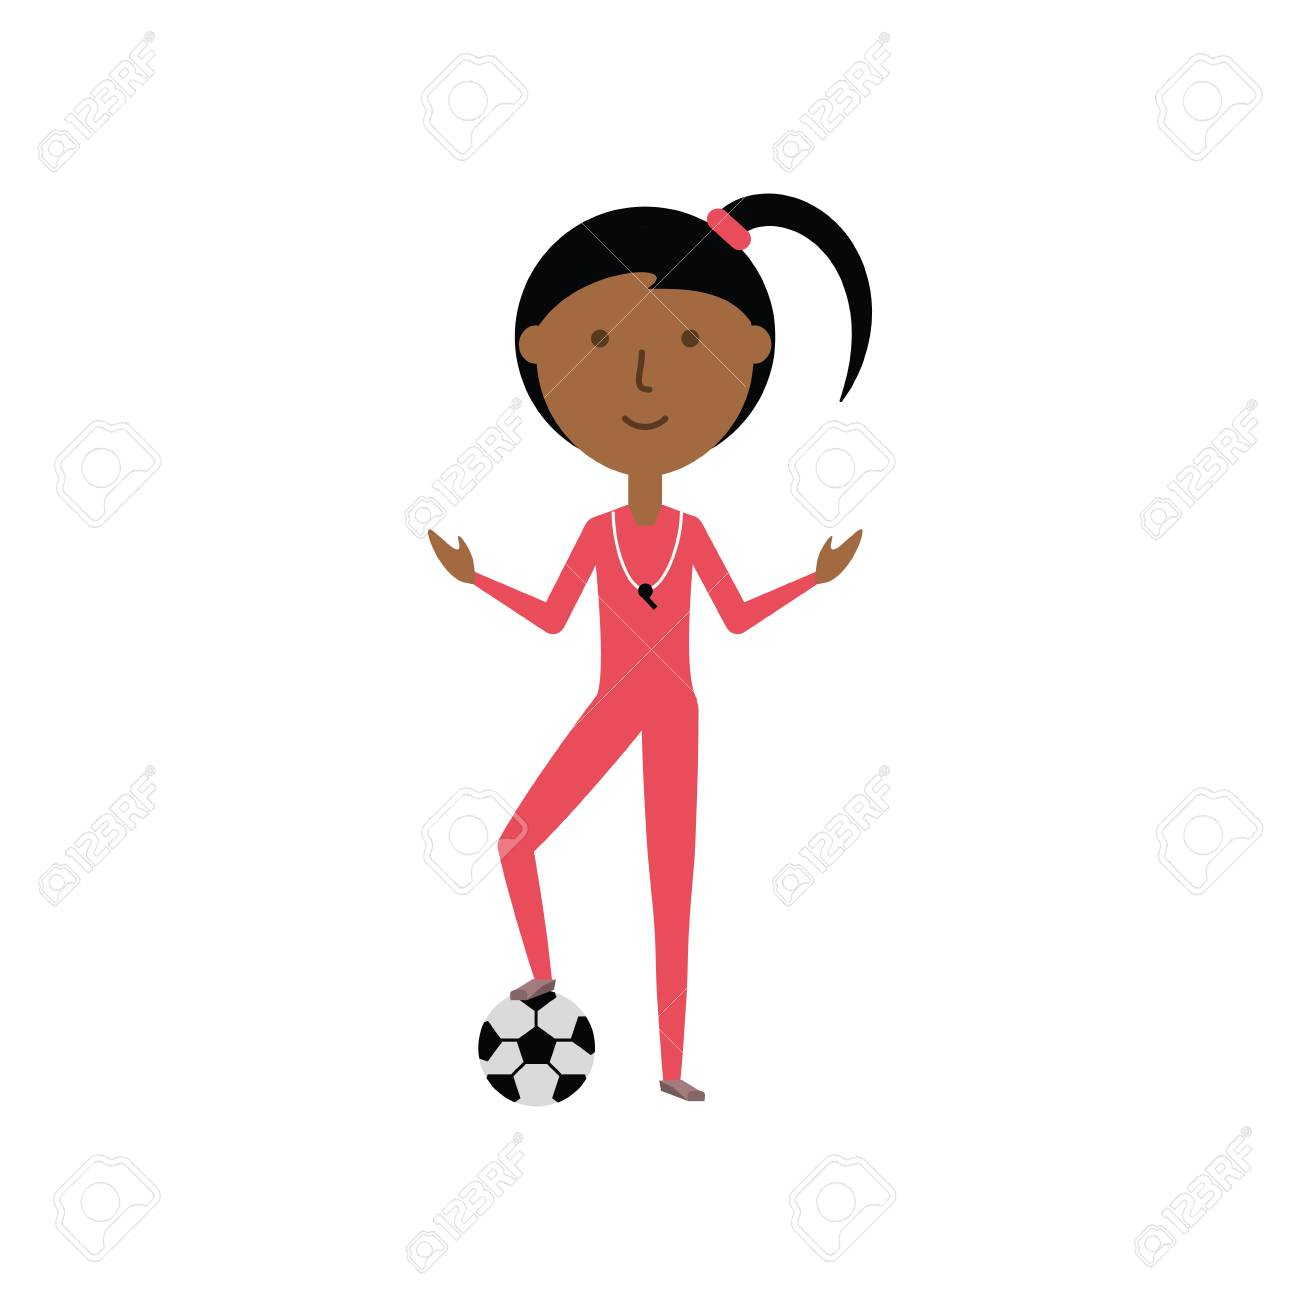 Colorful Sports Teacher Over White Background Vector Illustration Royalty  Free Cliparts, Vectors, And Stock Illustration. Image 88942358.